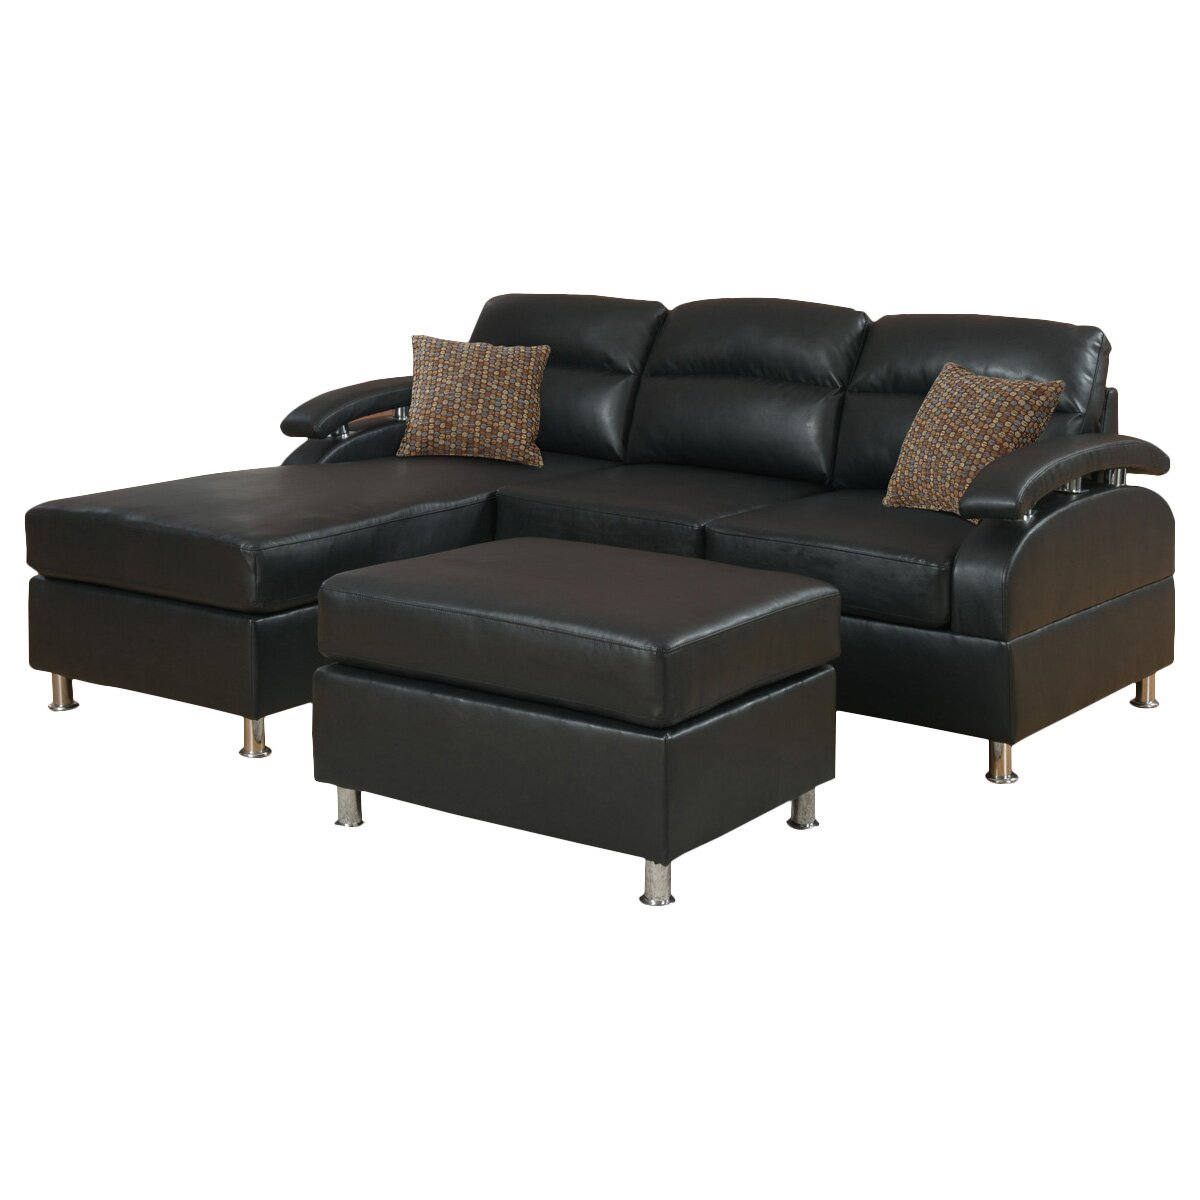 Poundex Bobkona Reversible Chaise Sectional Reviews